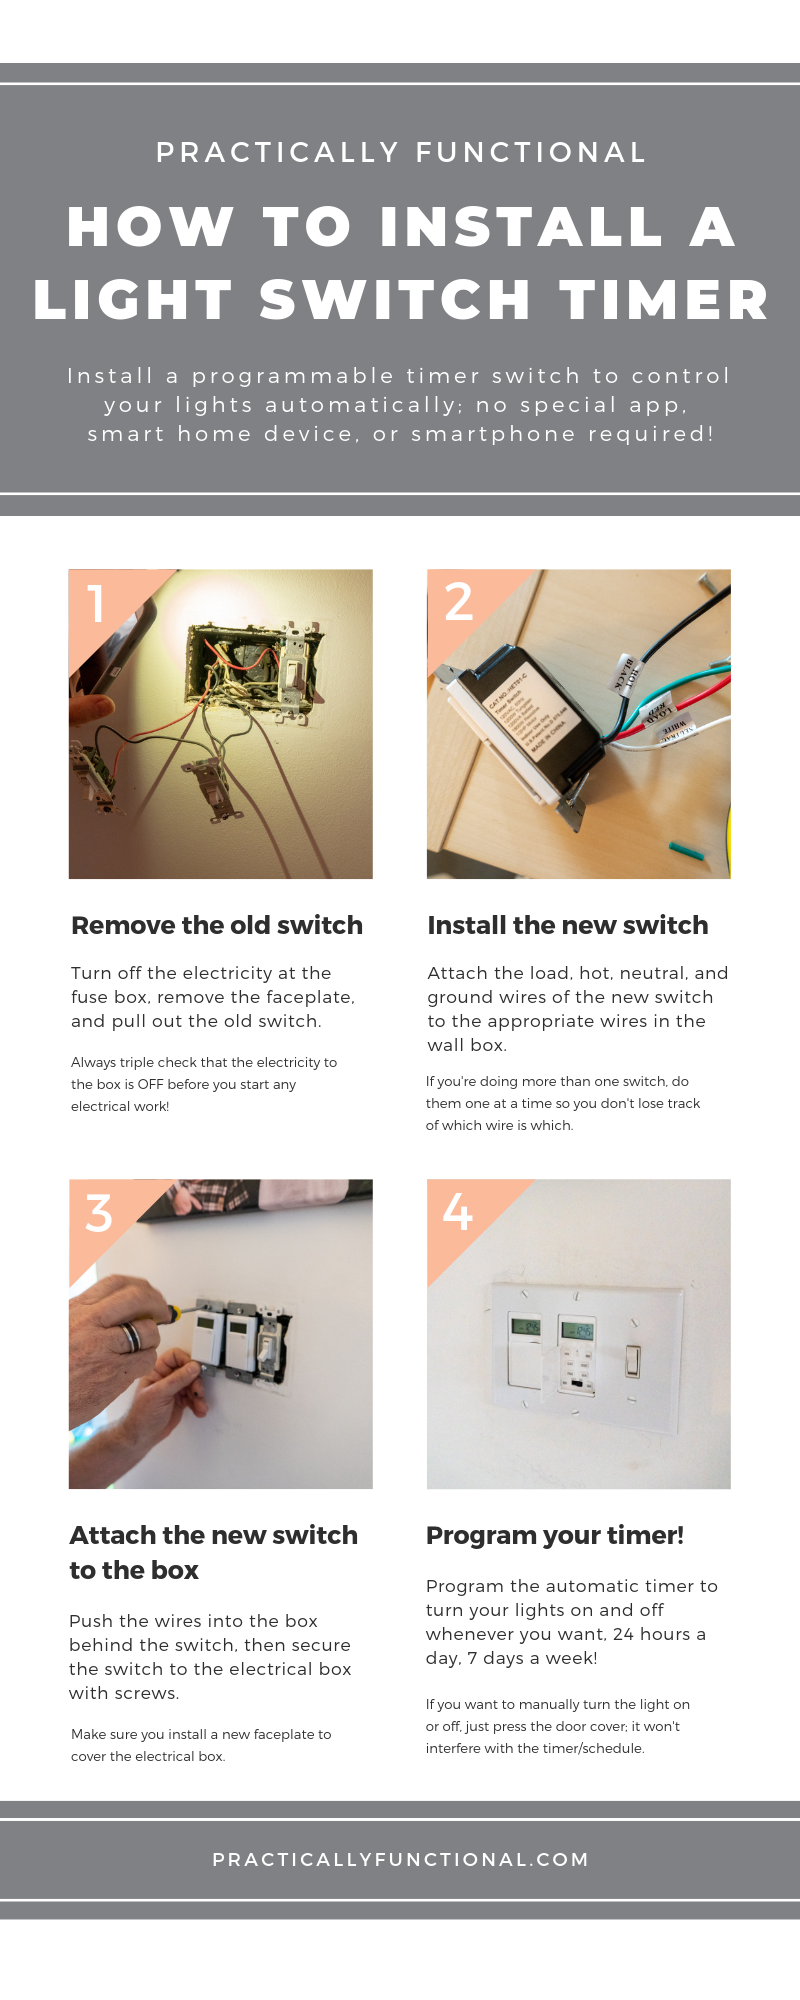 Learn how to replace a regular light switch with a programmable timer switch so you can control your lights automatically! No special app, smart home device, or smartphone required! #simplediy #automaticlights